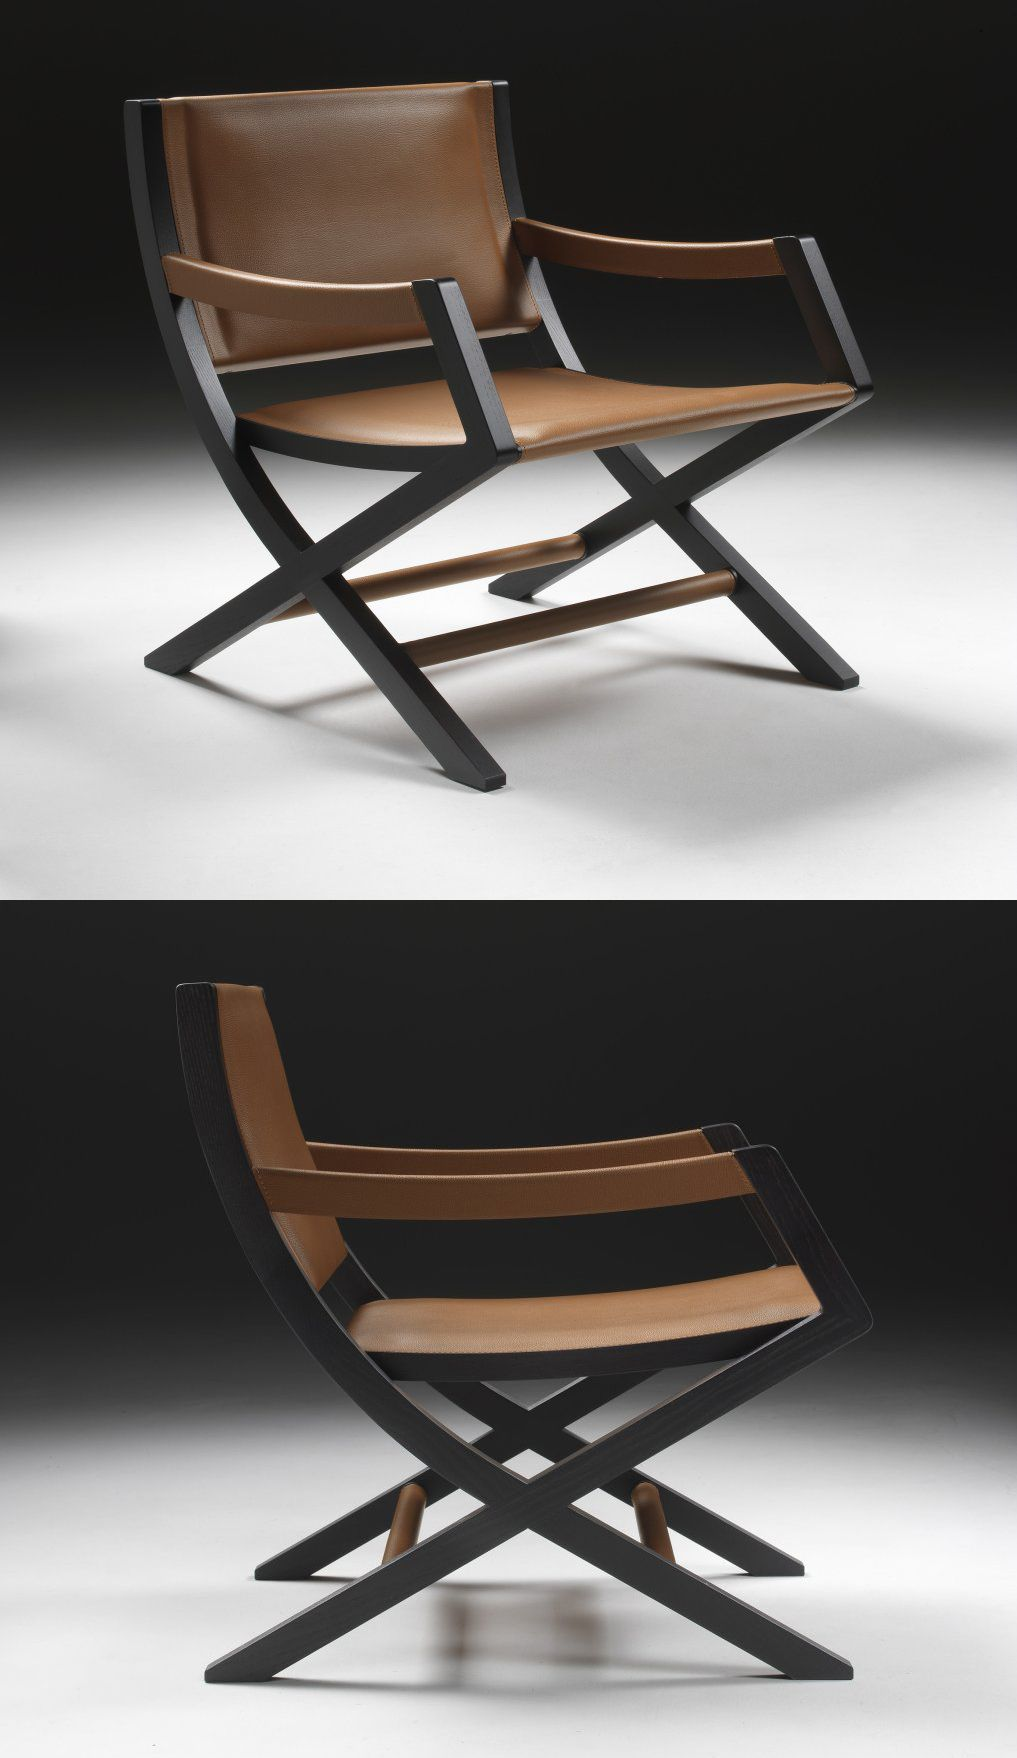 Armchair Solid Wood Material The Elegant Shape And Lines Give The Chair A Special Taste